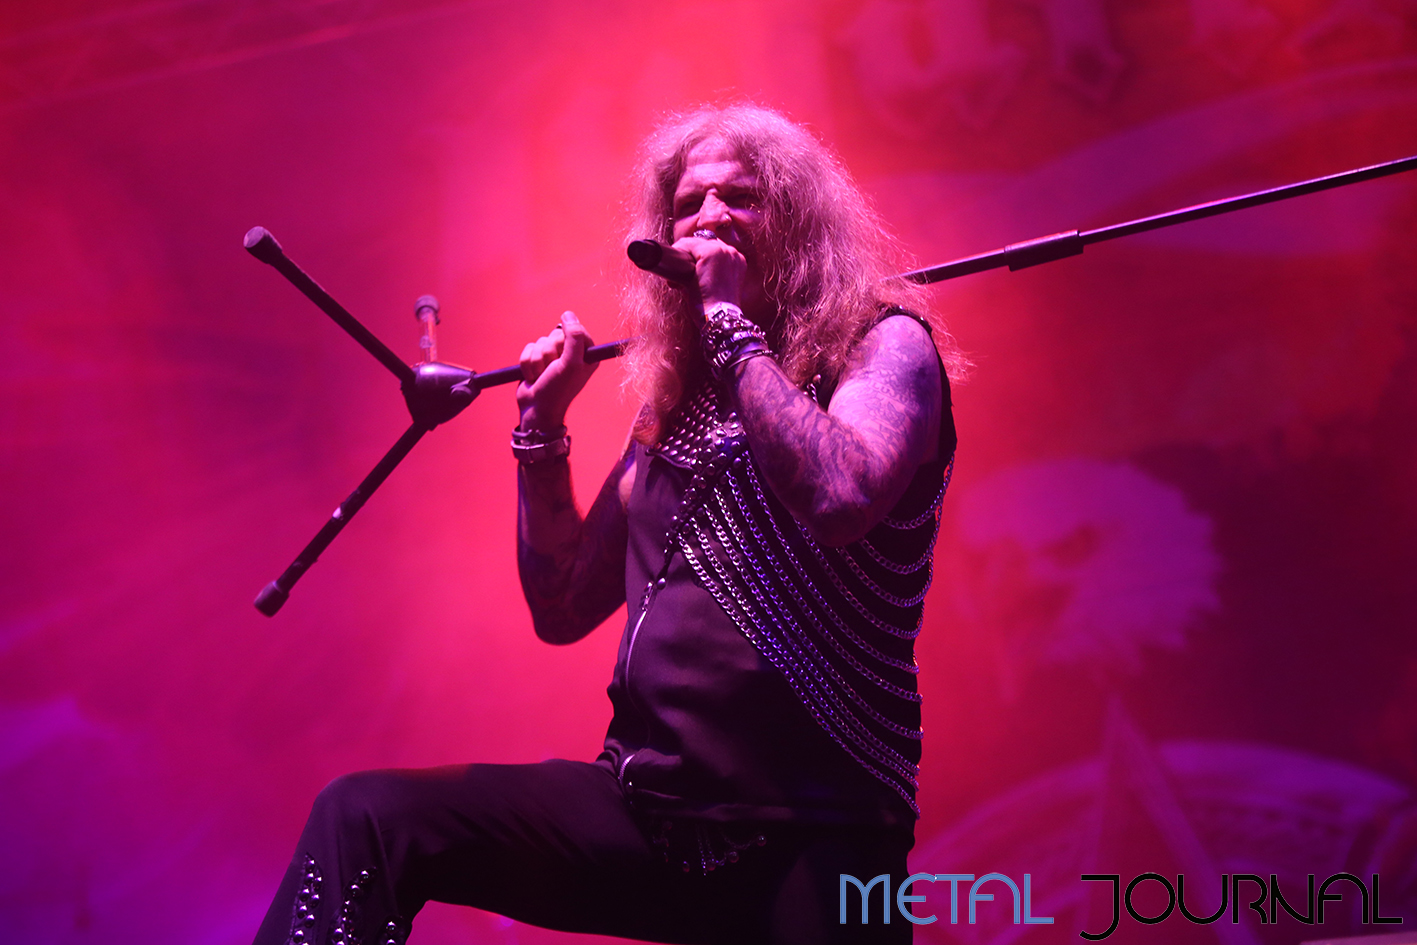 lujuria - leyendas del rock 2019 metal journal pic 1